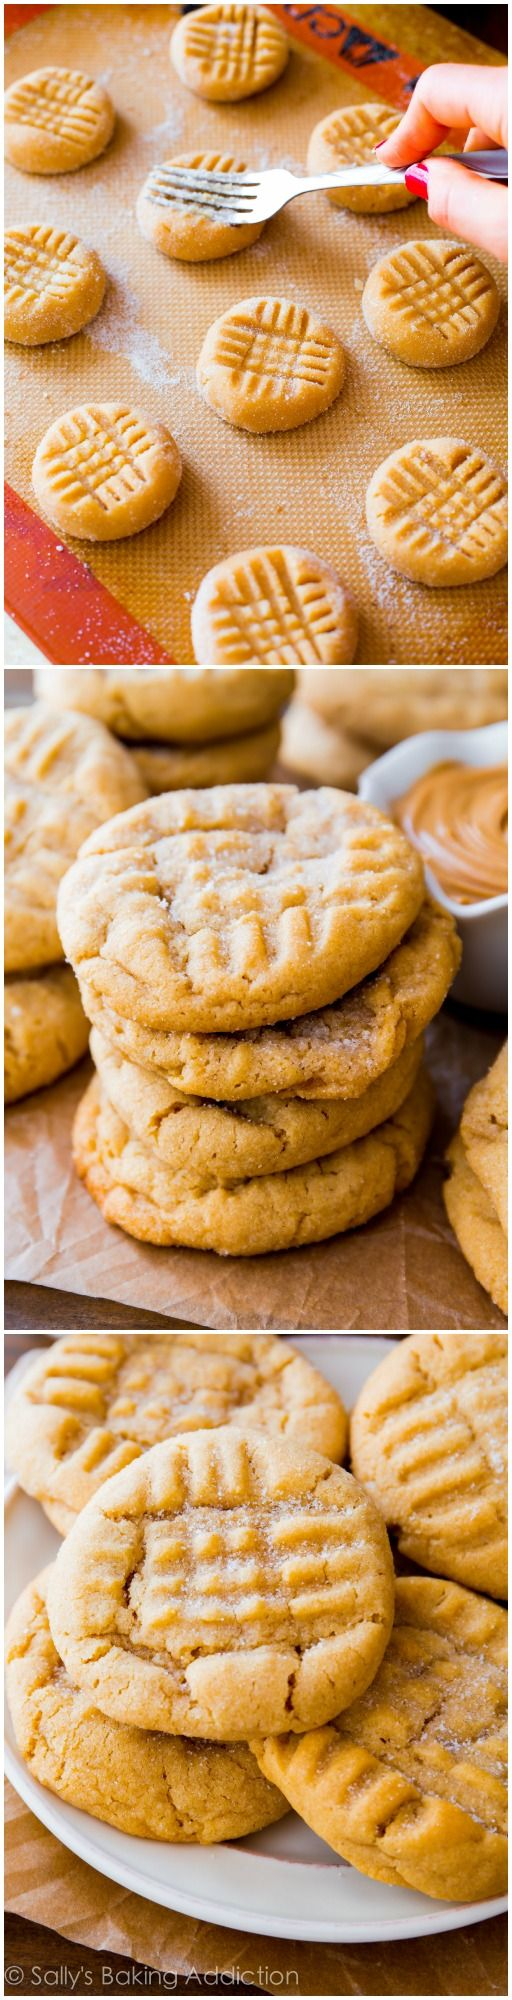 These classic peanut butter cookies are always a hit. Super chewy and they stay soft for DAYS! If they last that long.